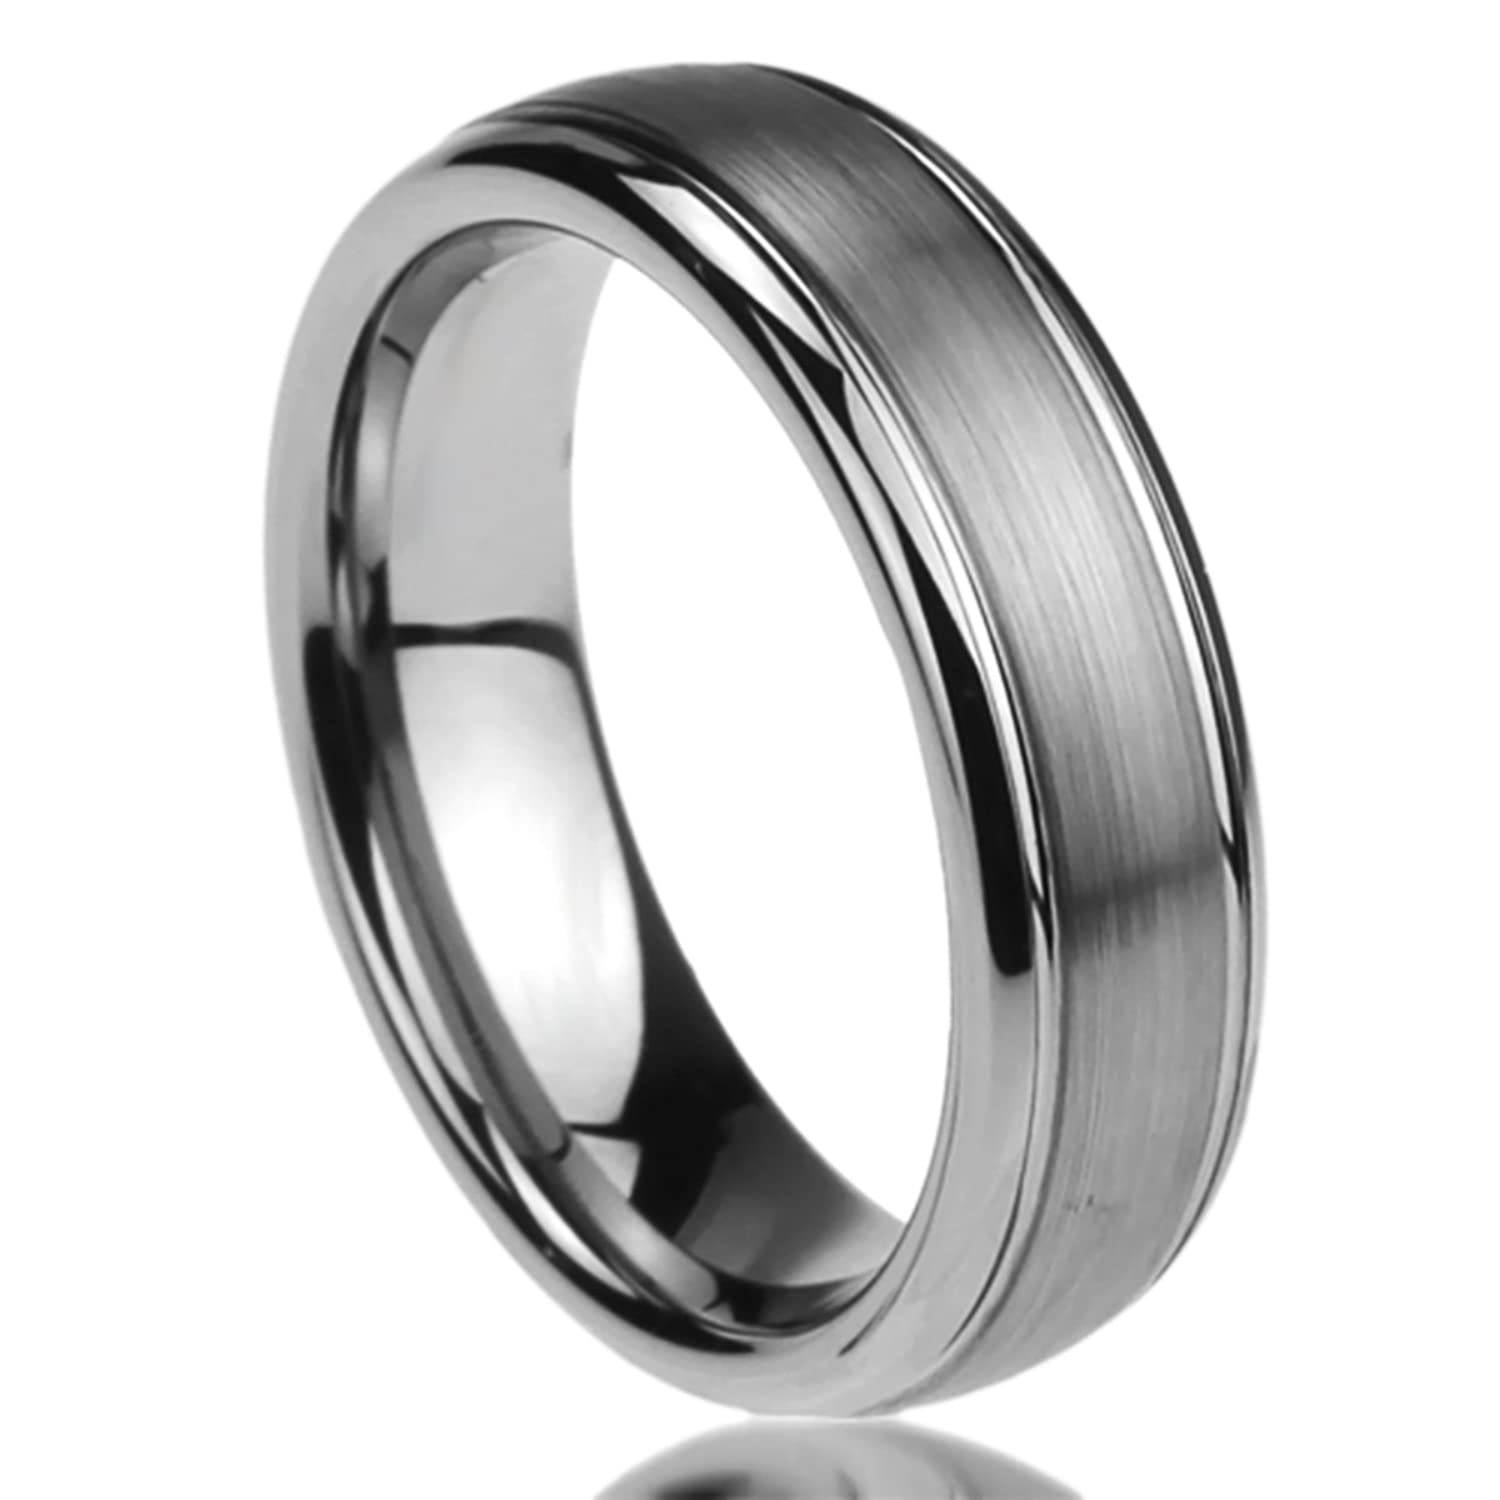 6MM Titanium Mens Womens Rings Brushed Centered Domed fort Fit